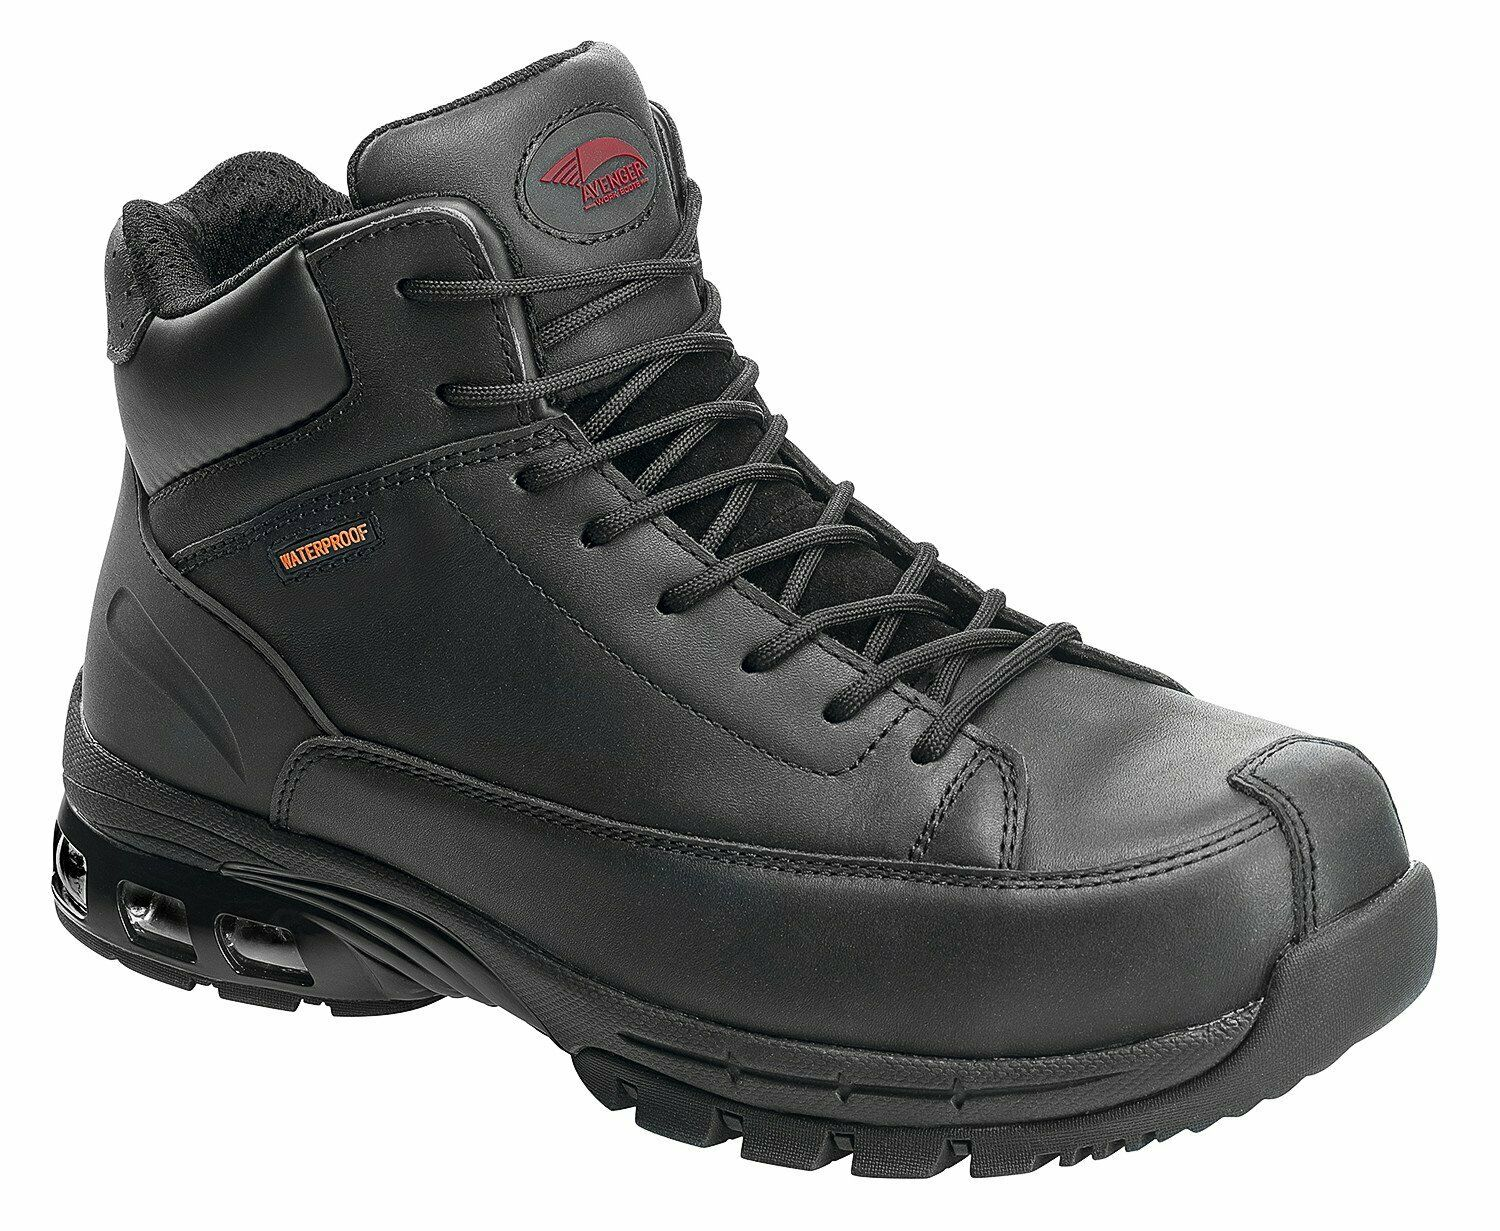 Avenger Mens Composite Toe Waterproof EH Hiker M Black Leather Boots M 14